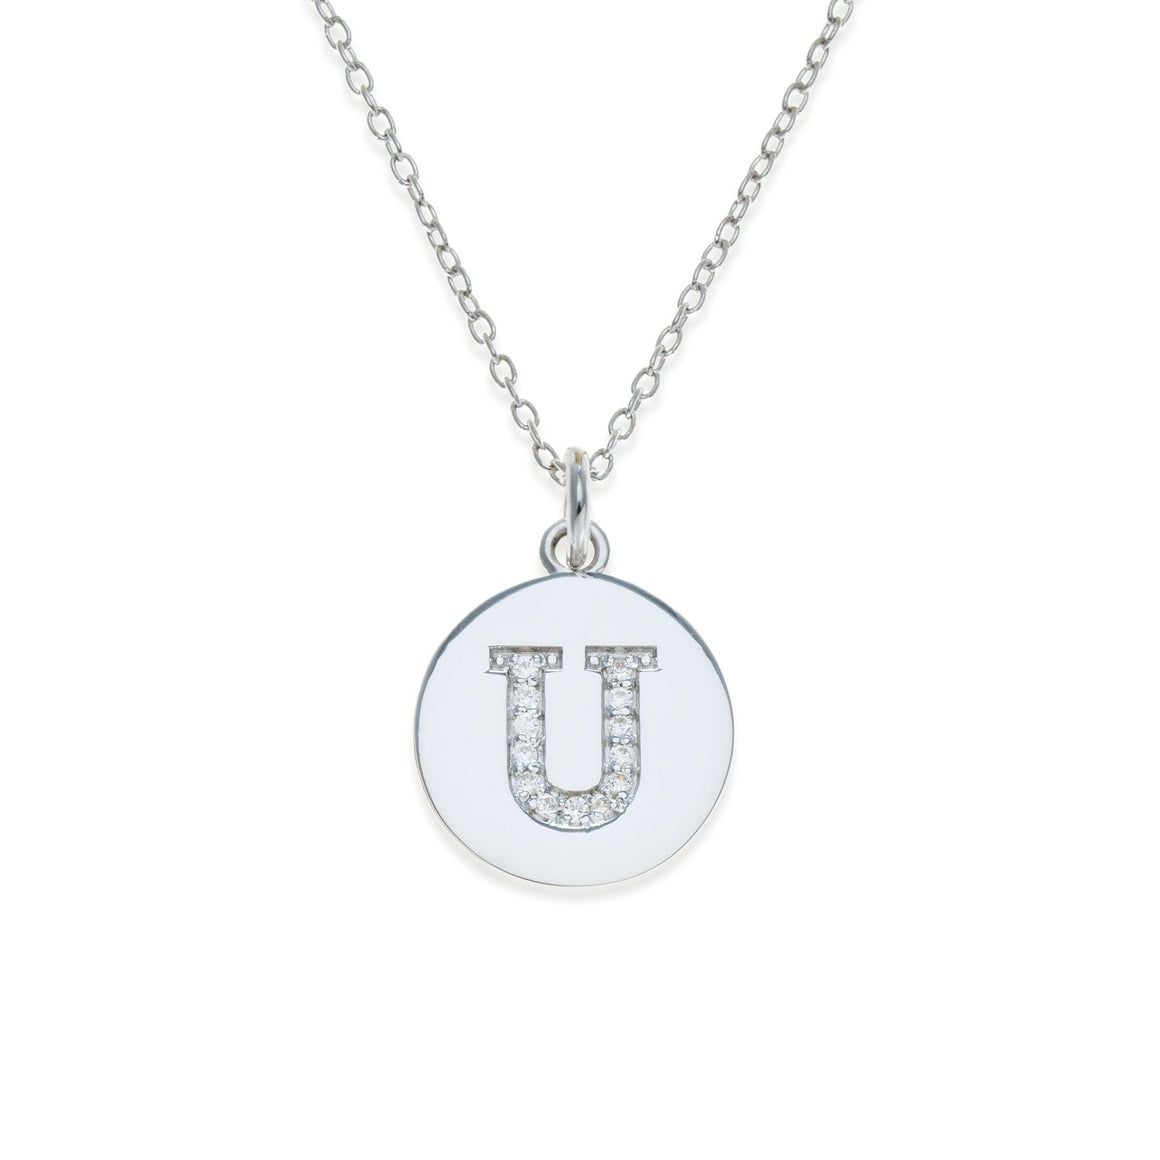 Sterling Silver Initial Necklace - U | Kith & Kin | It's Personal Collection